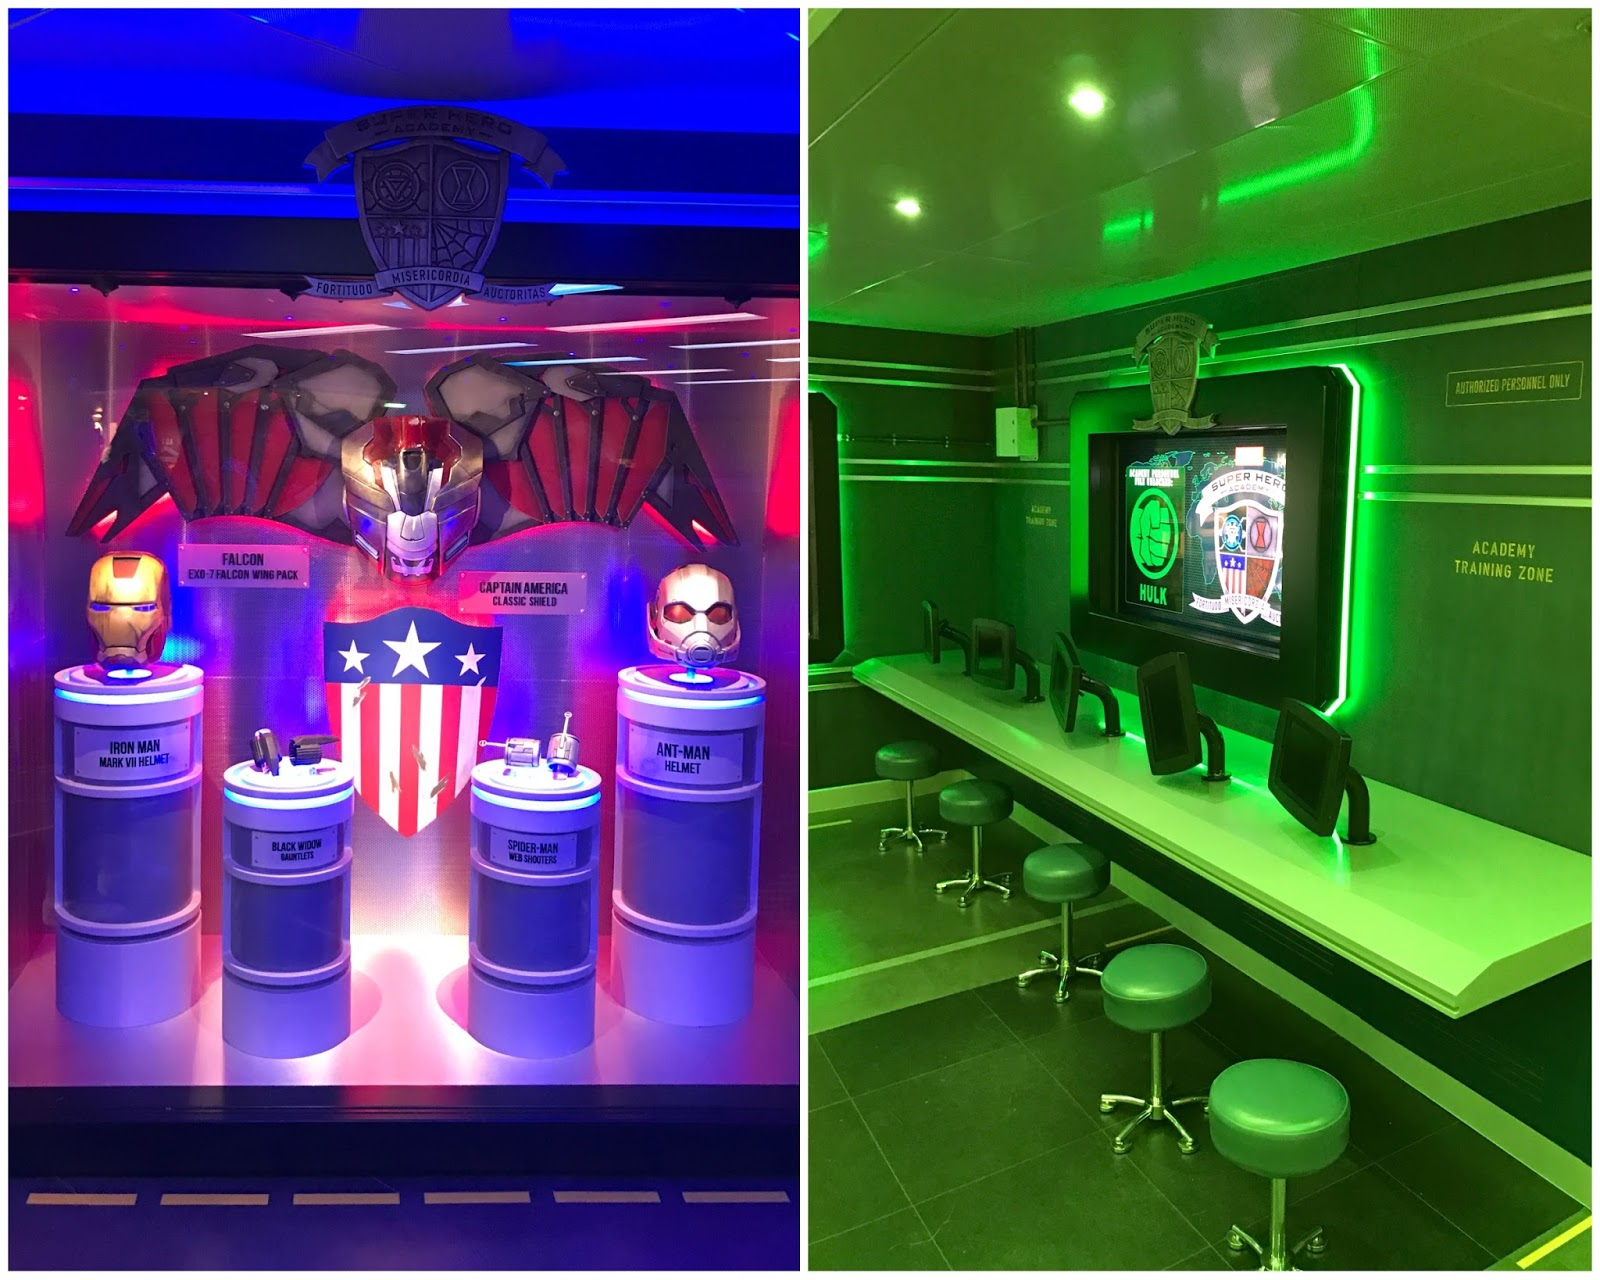 Avengers Academy Disney Wonder, Avengers Playroom at Disney Wonder, Avengers Playroom on Disney Cruise